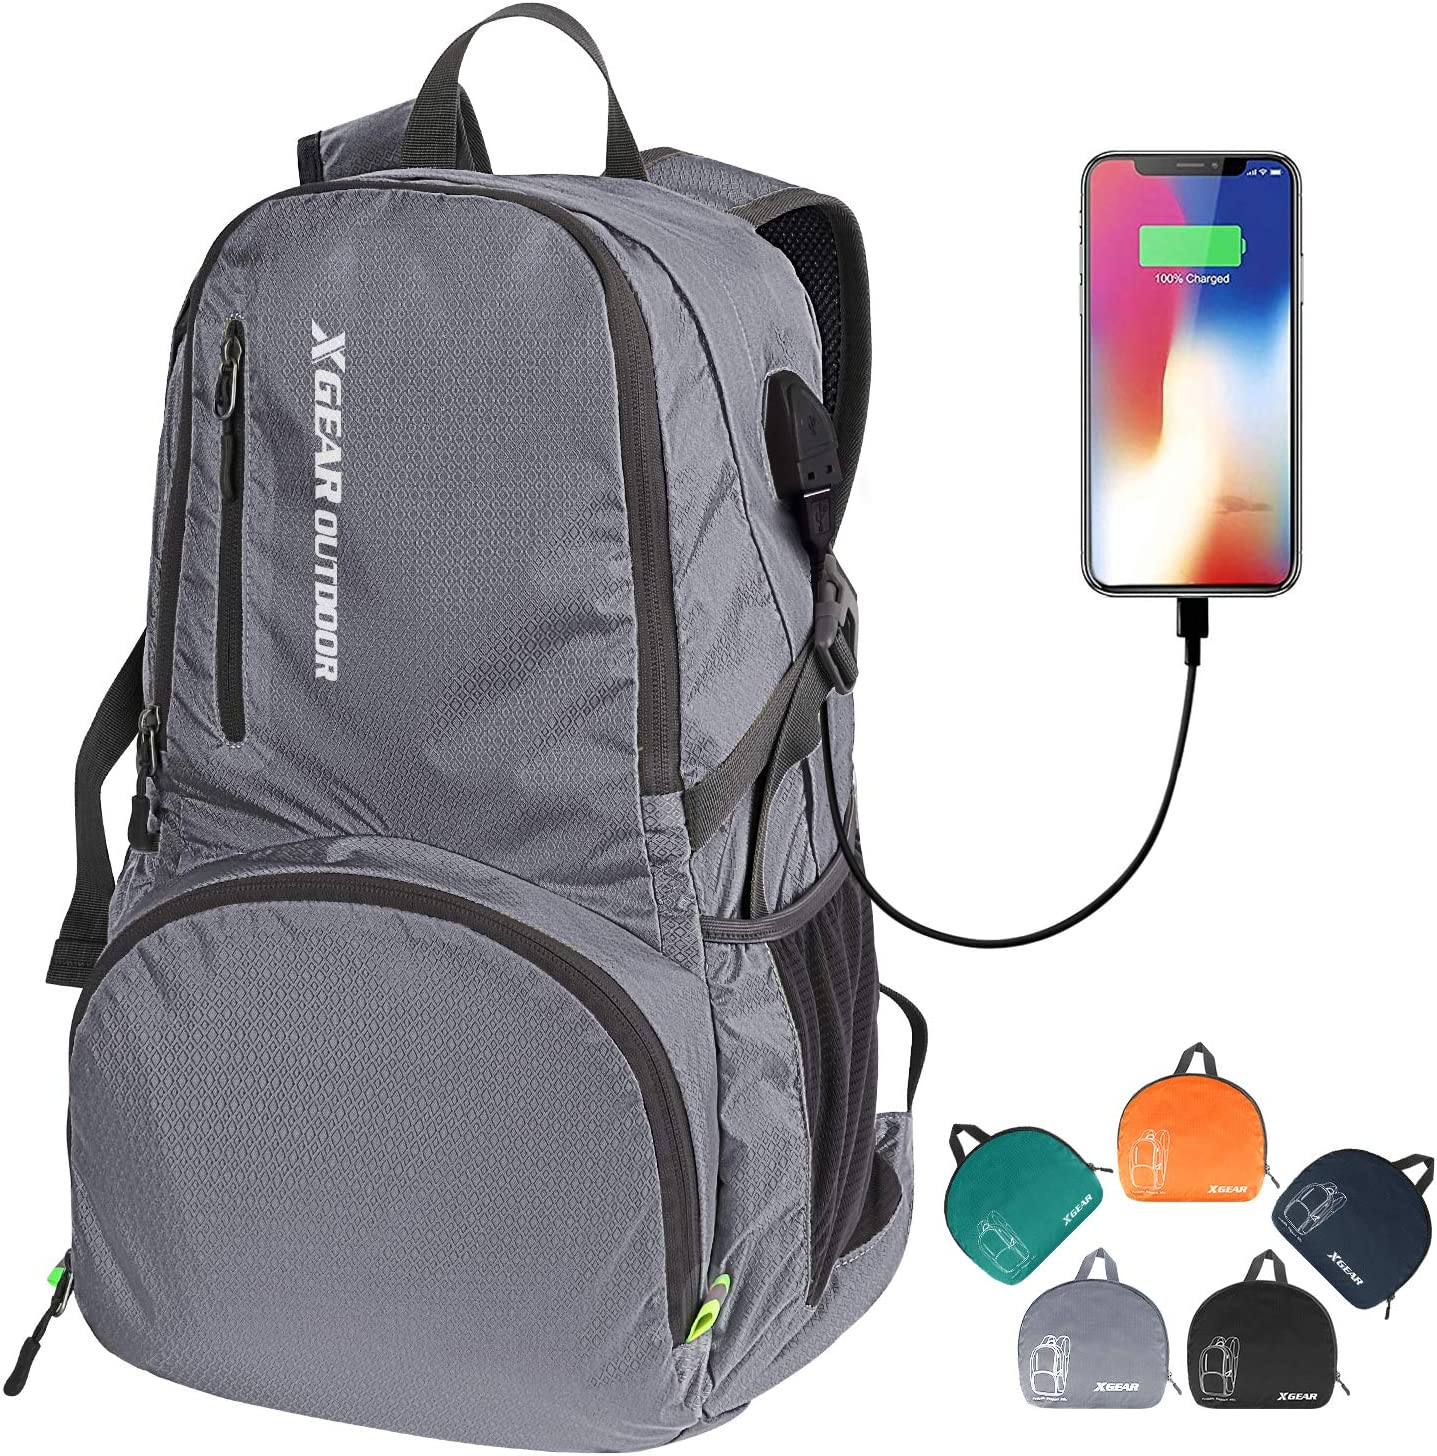 XGEAR 35L Ranking TOP5 Ultralight Packable Foldable Handy Be super welcome Daypack Backpack